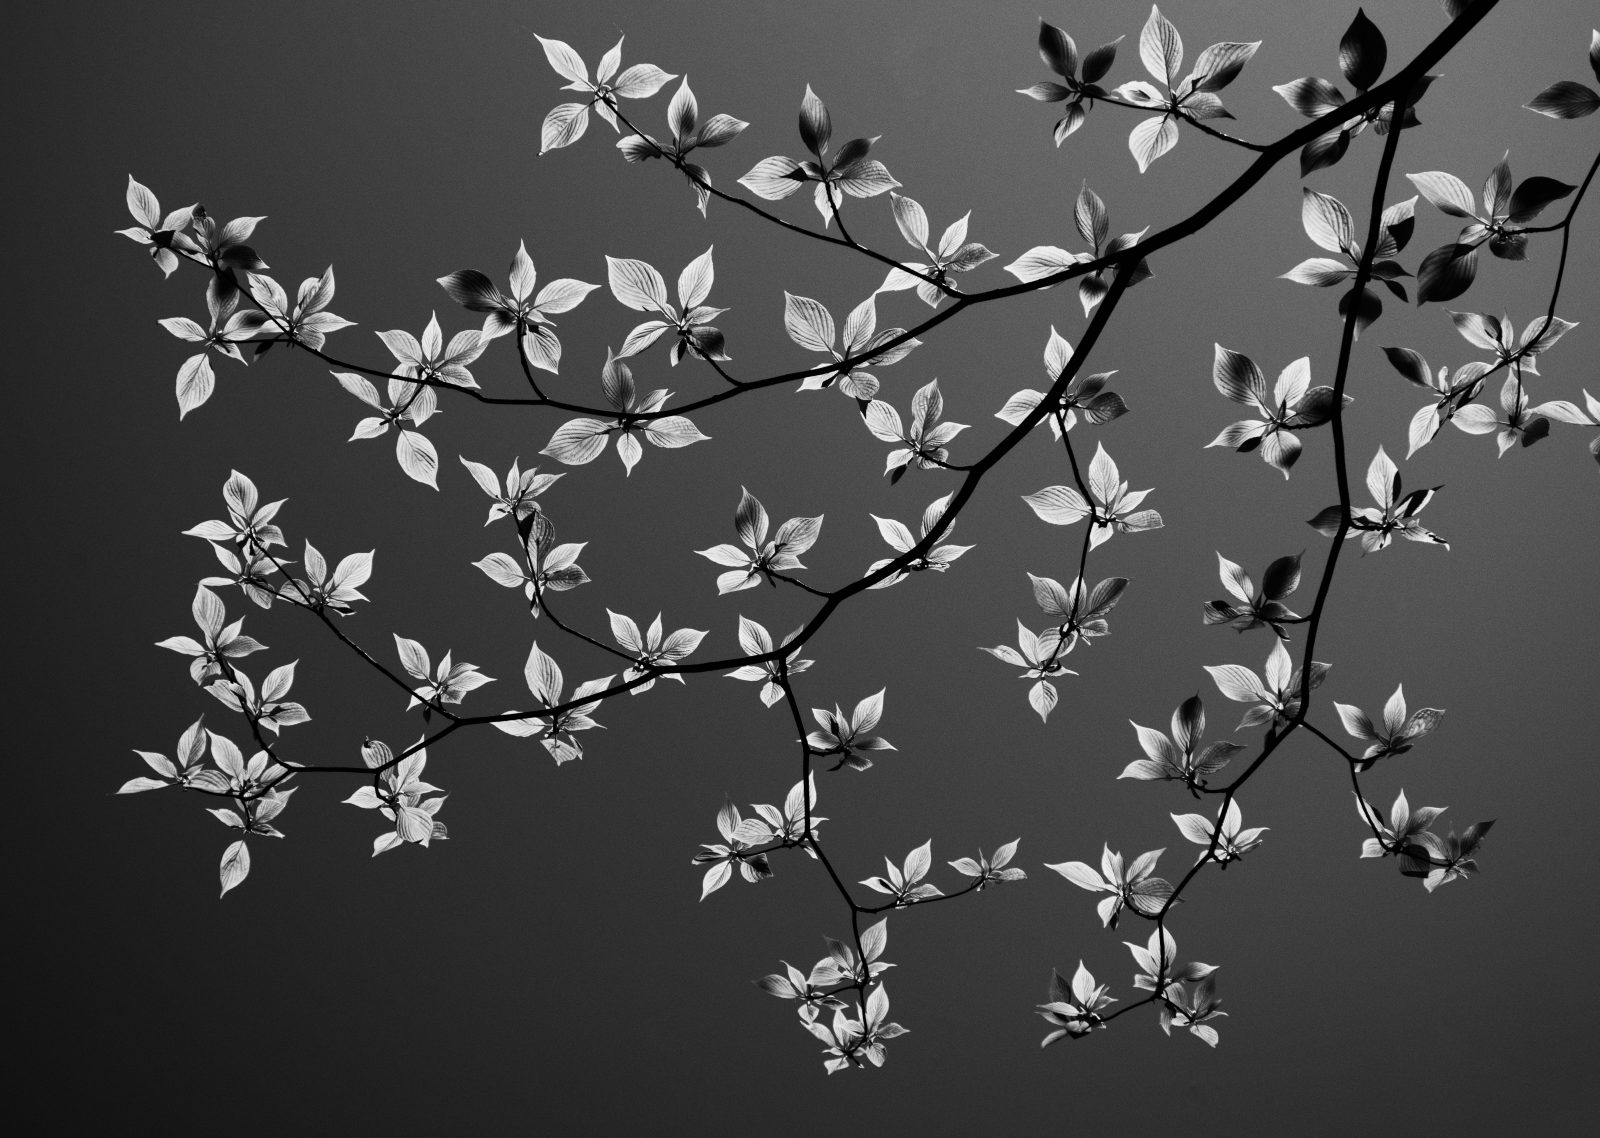 Backlit Giant Dogwood